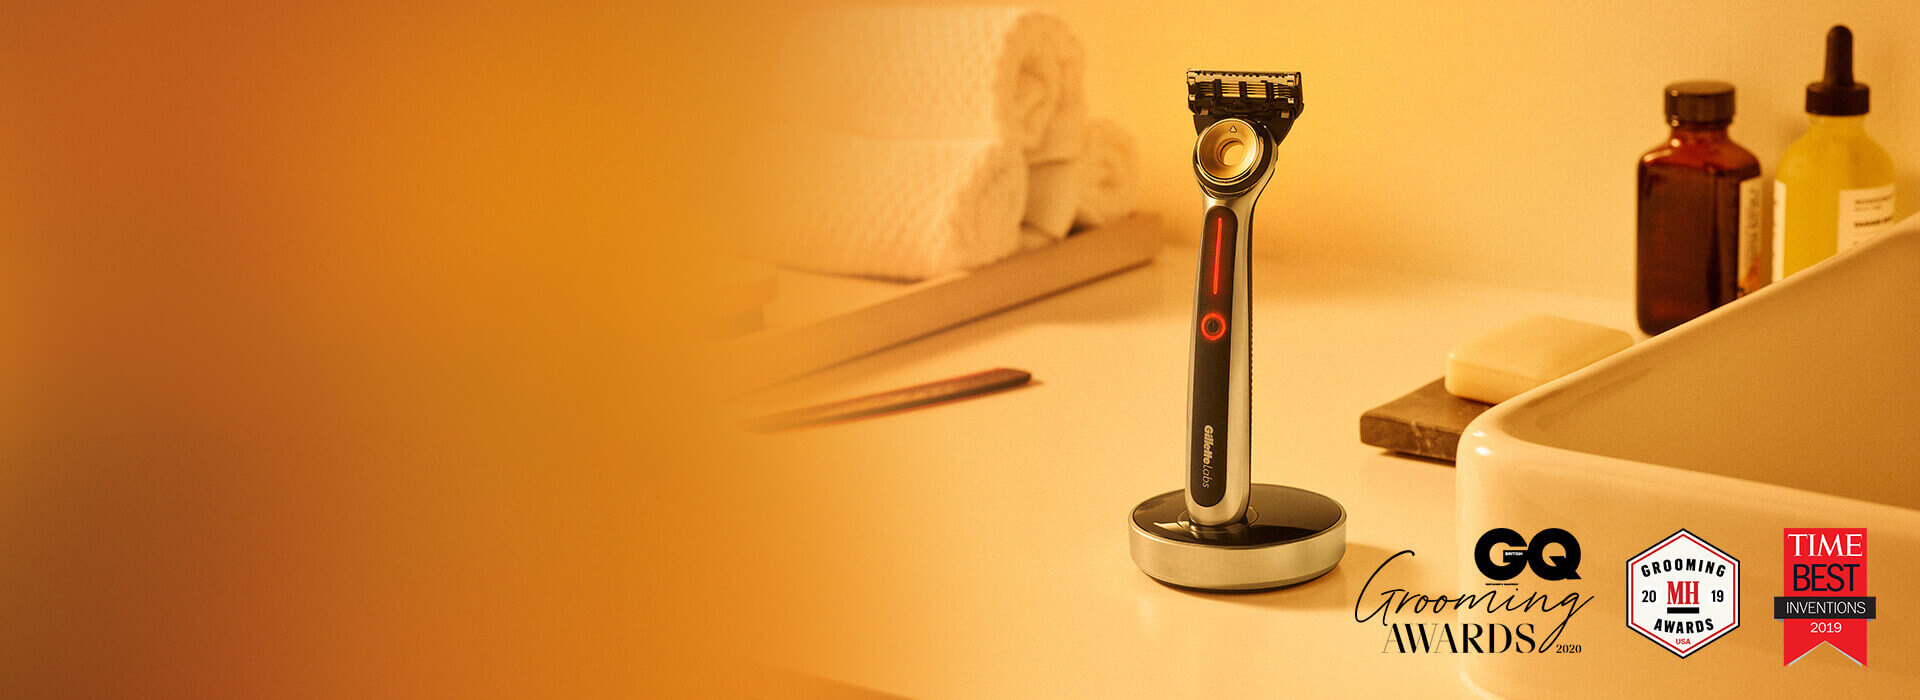 The Ultimate Shaving Experience